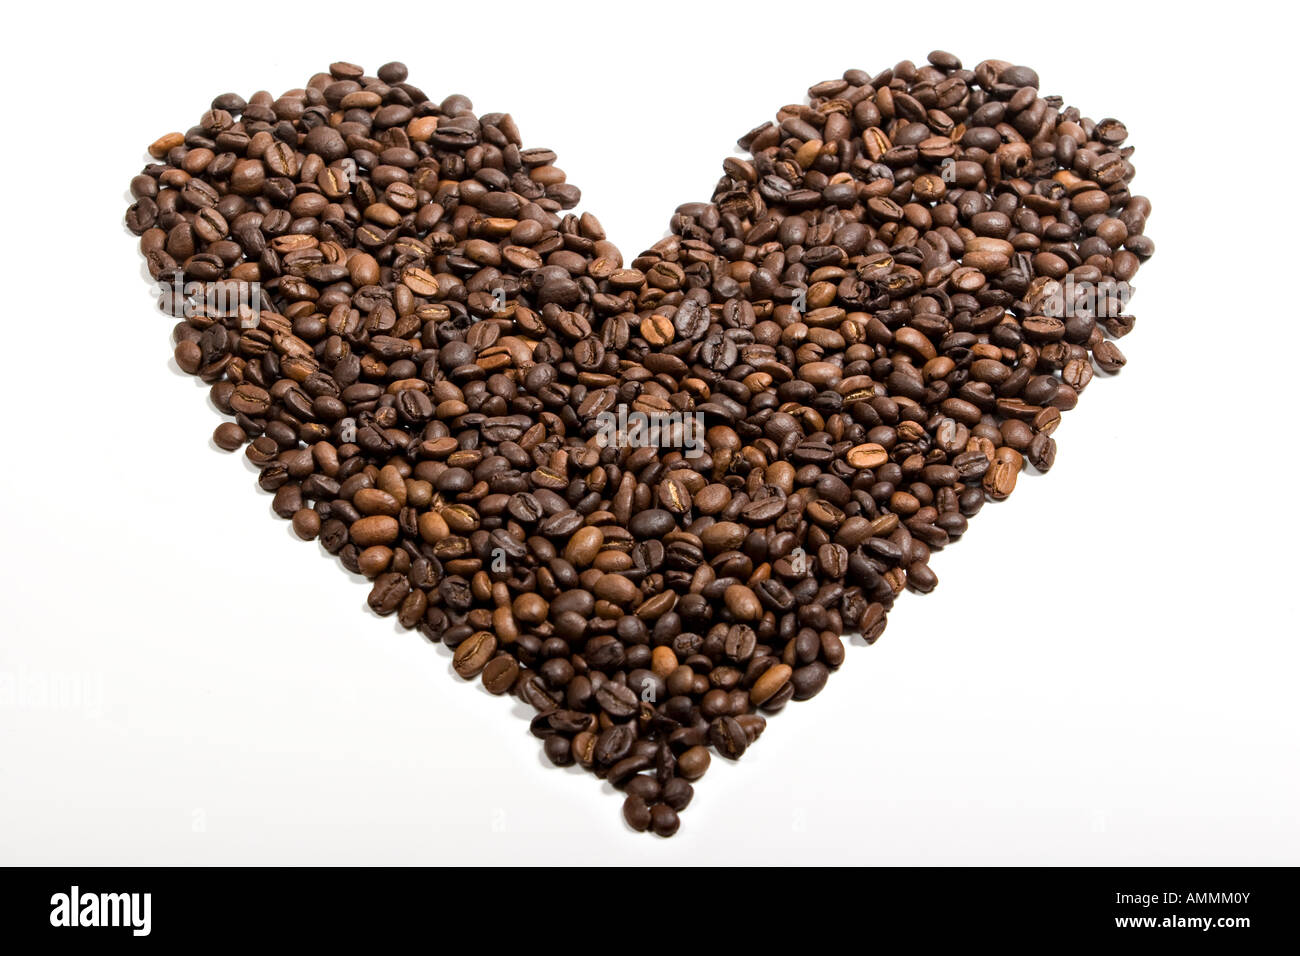 An heart shaped pile of coffee beans isolated on white background - Stock Image